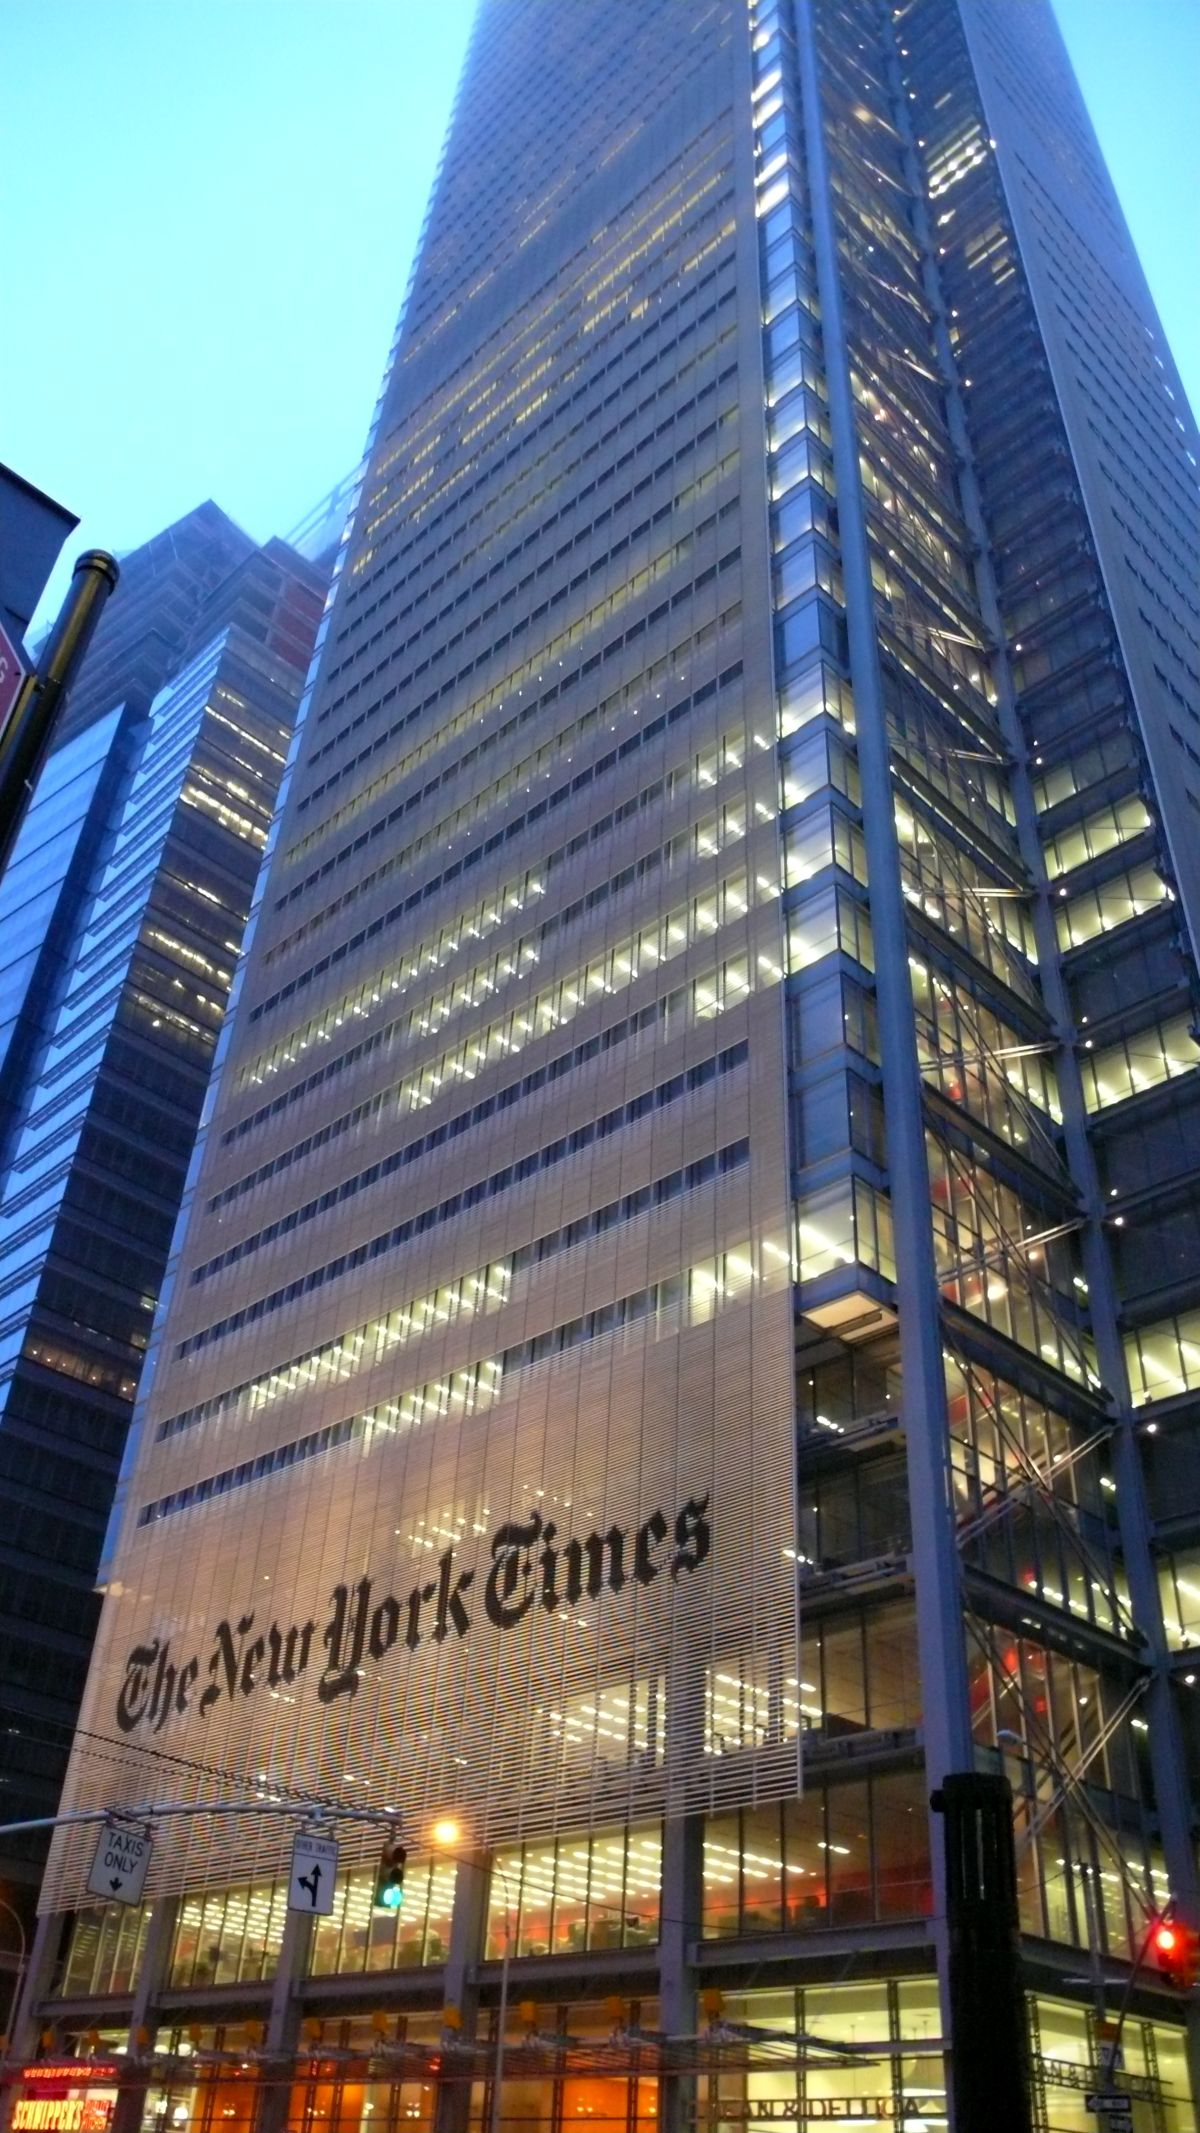 The New York Times Building, obra de Renzo Piano